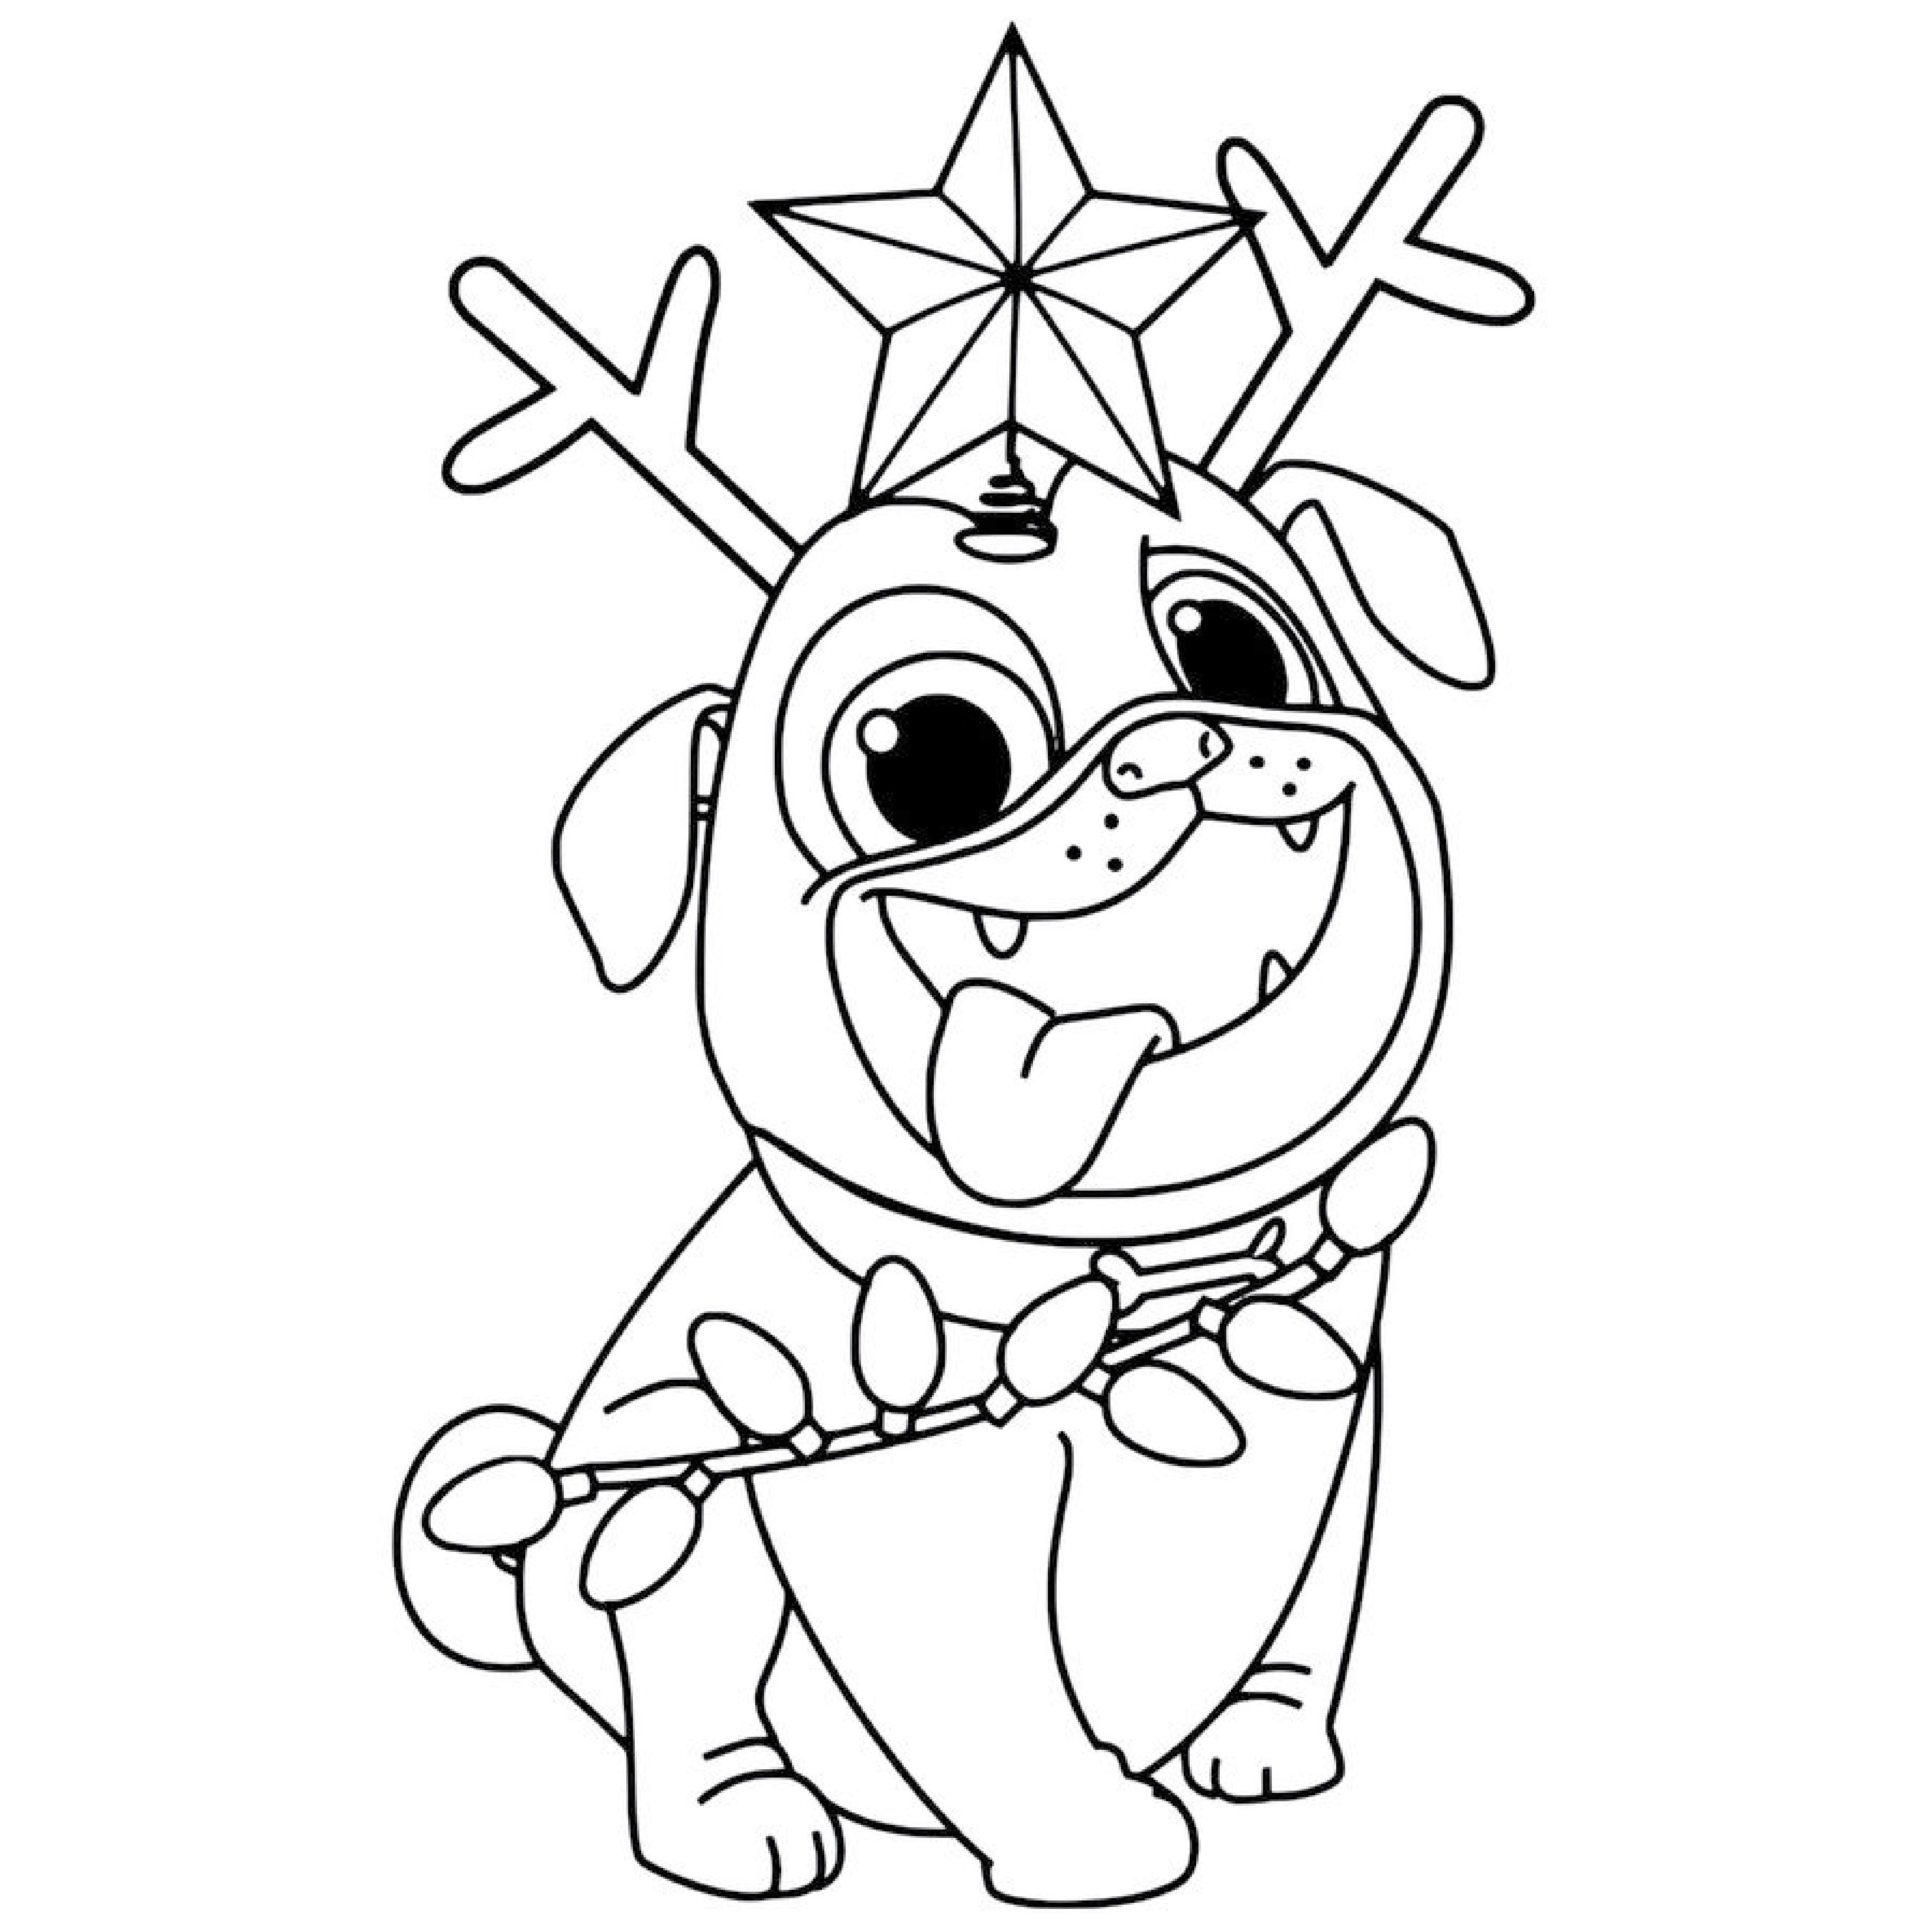 Coloring Book Pages In 2021 Christmas Coloring Pages Puppy Coloring Pages Printable Christmas Coloring Pages [ 4167 x 4167 Pixel ]